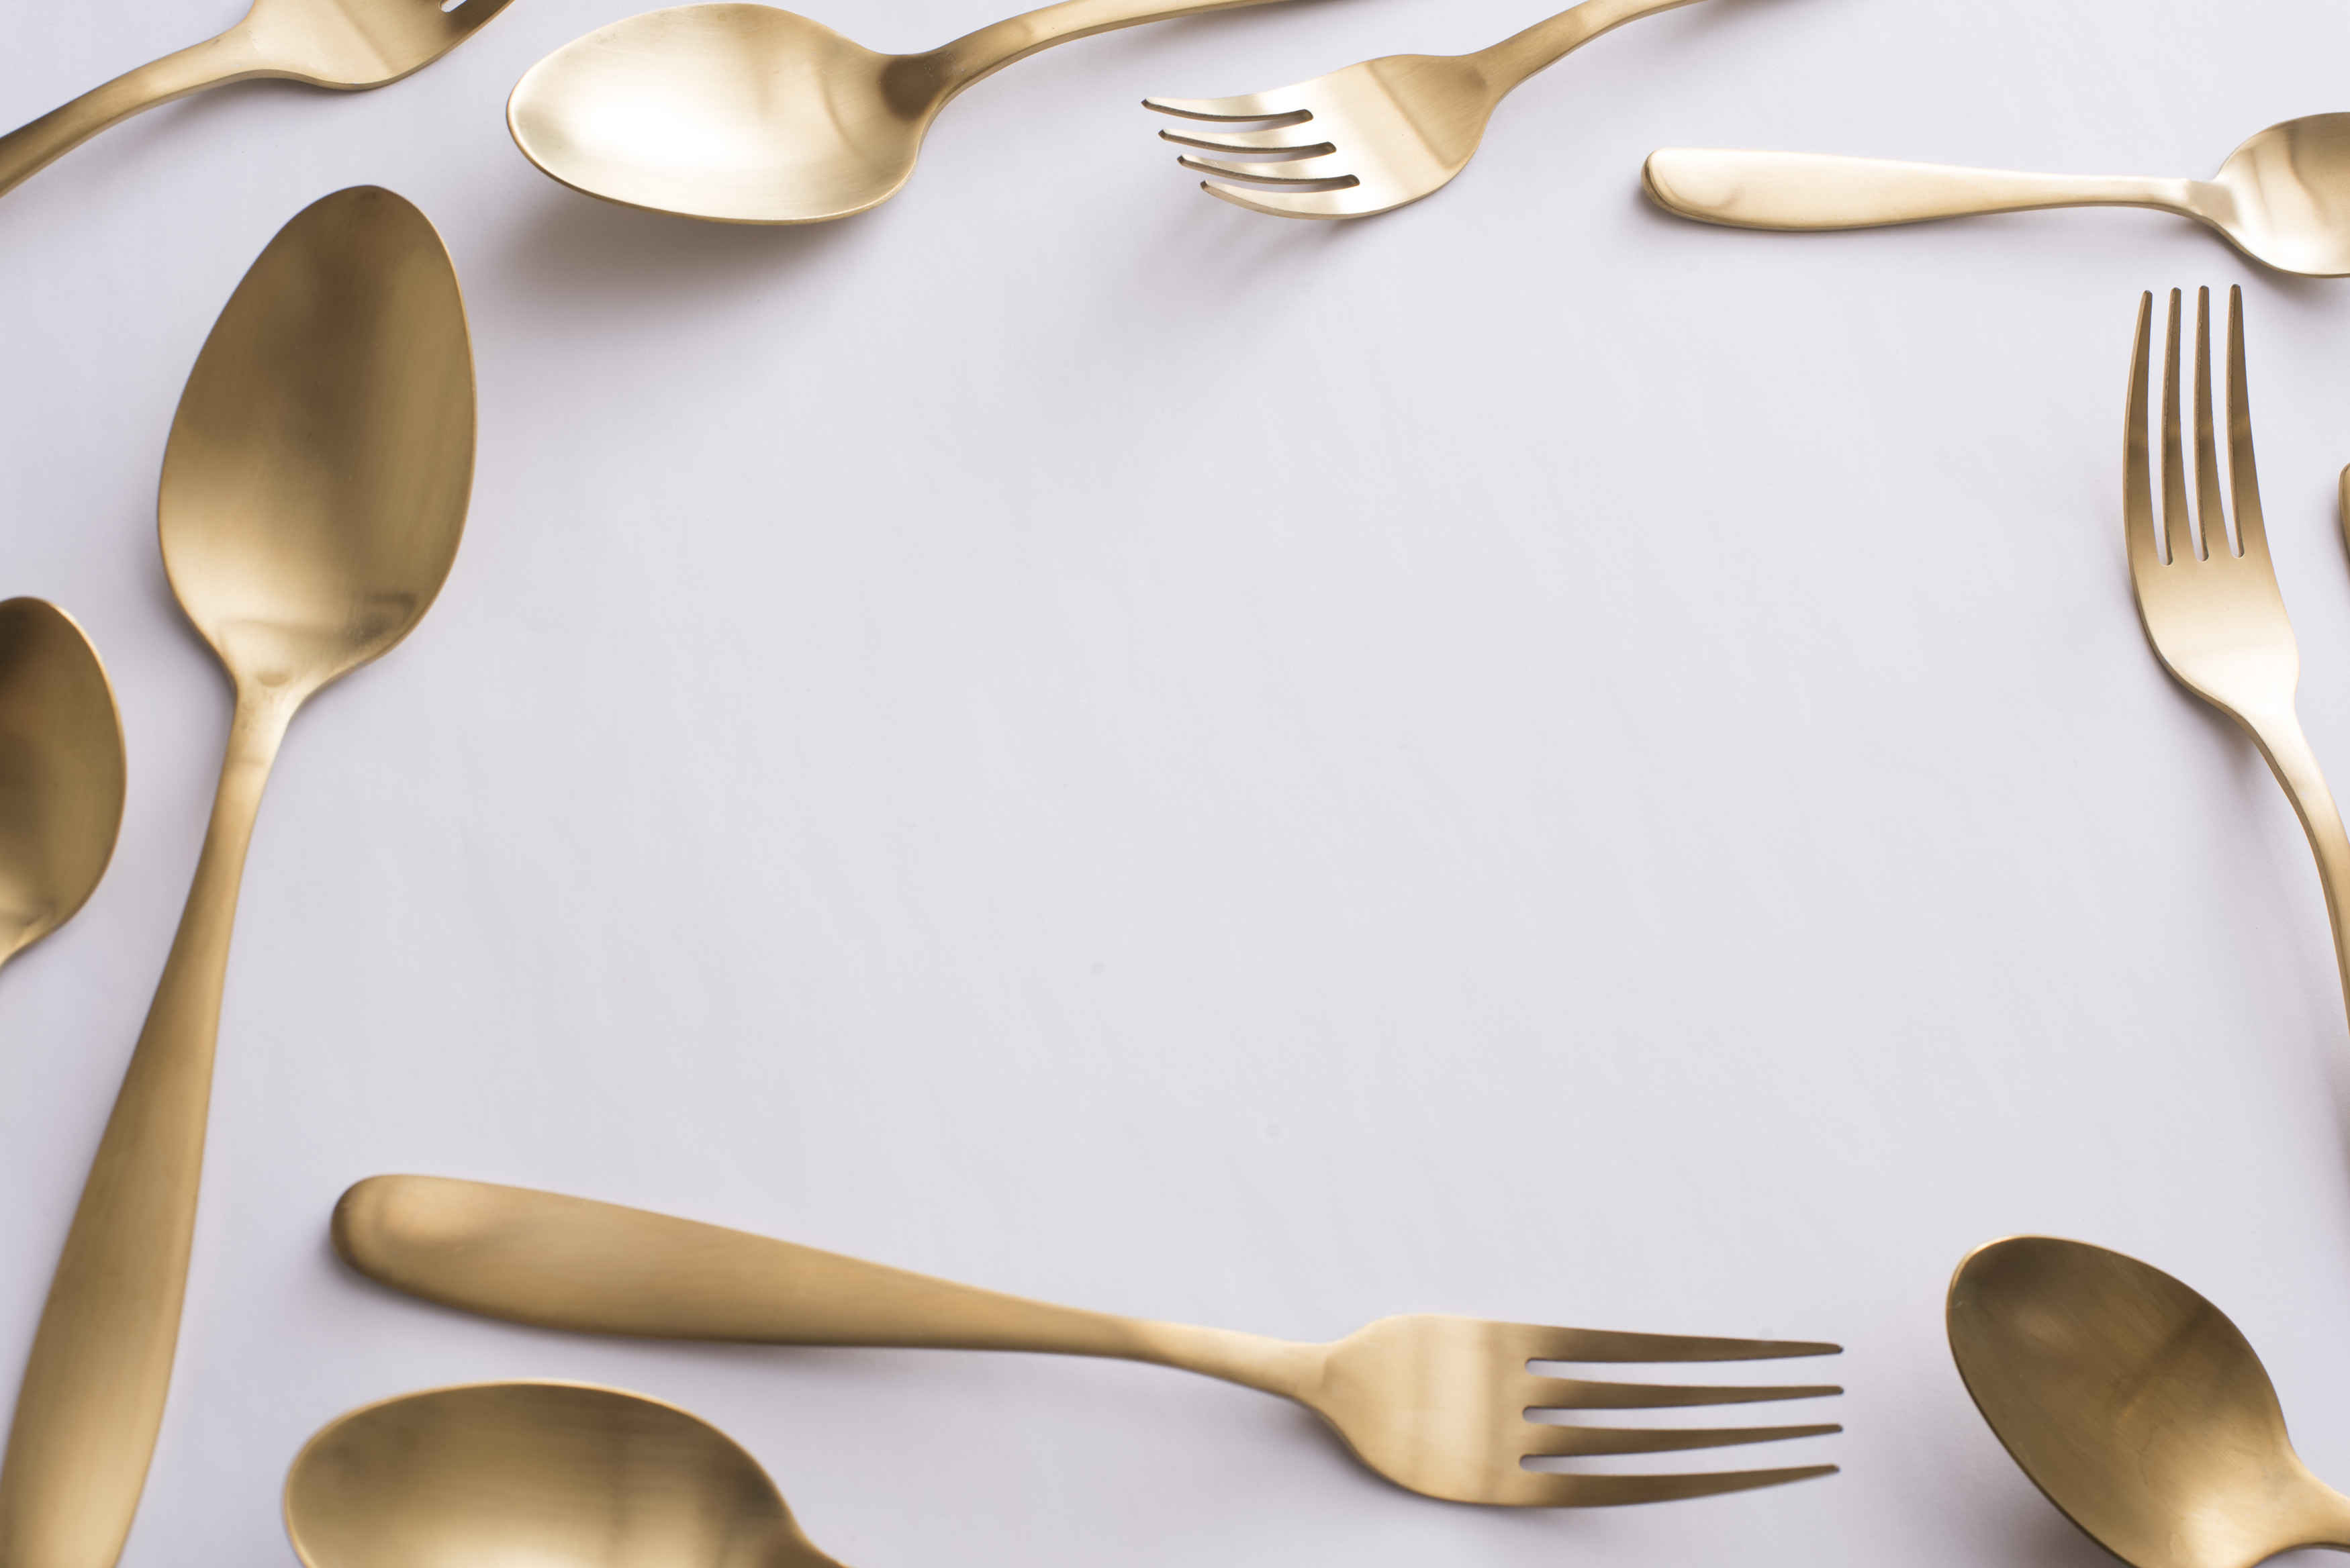 Free Stock Photo 13101 Food or catering frame with assorted cutlery ...